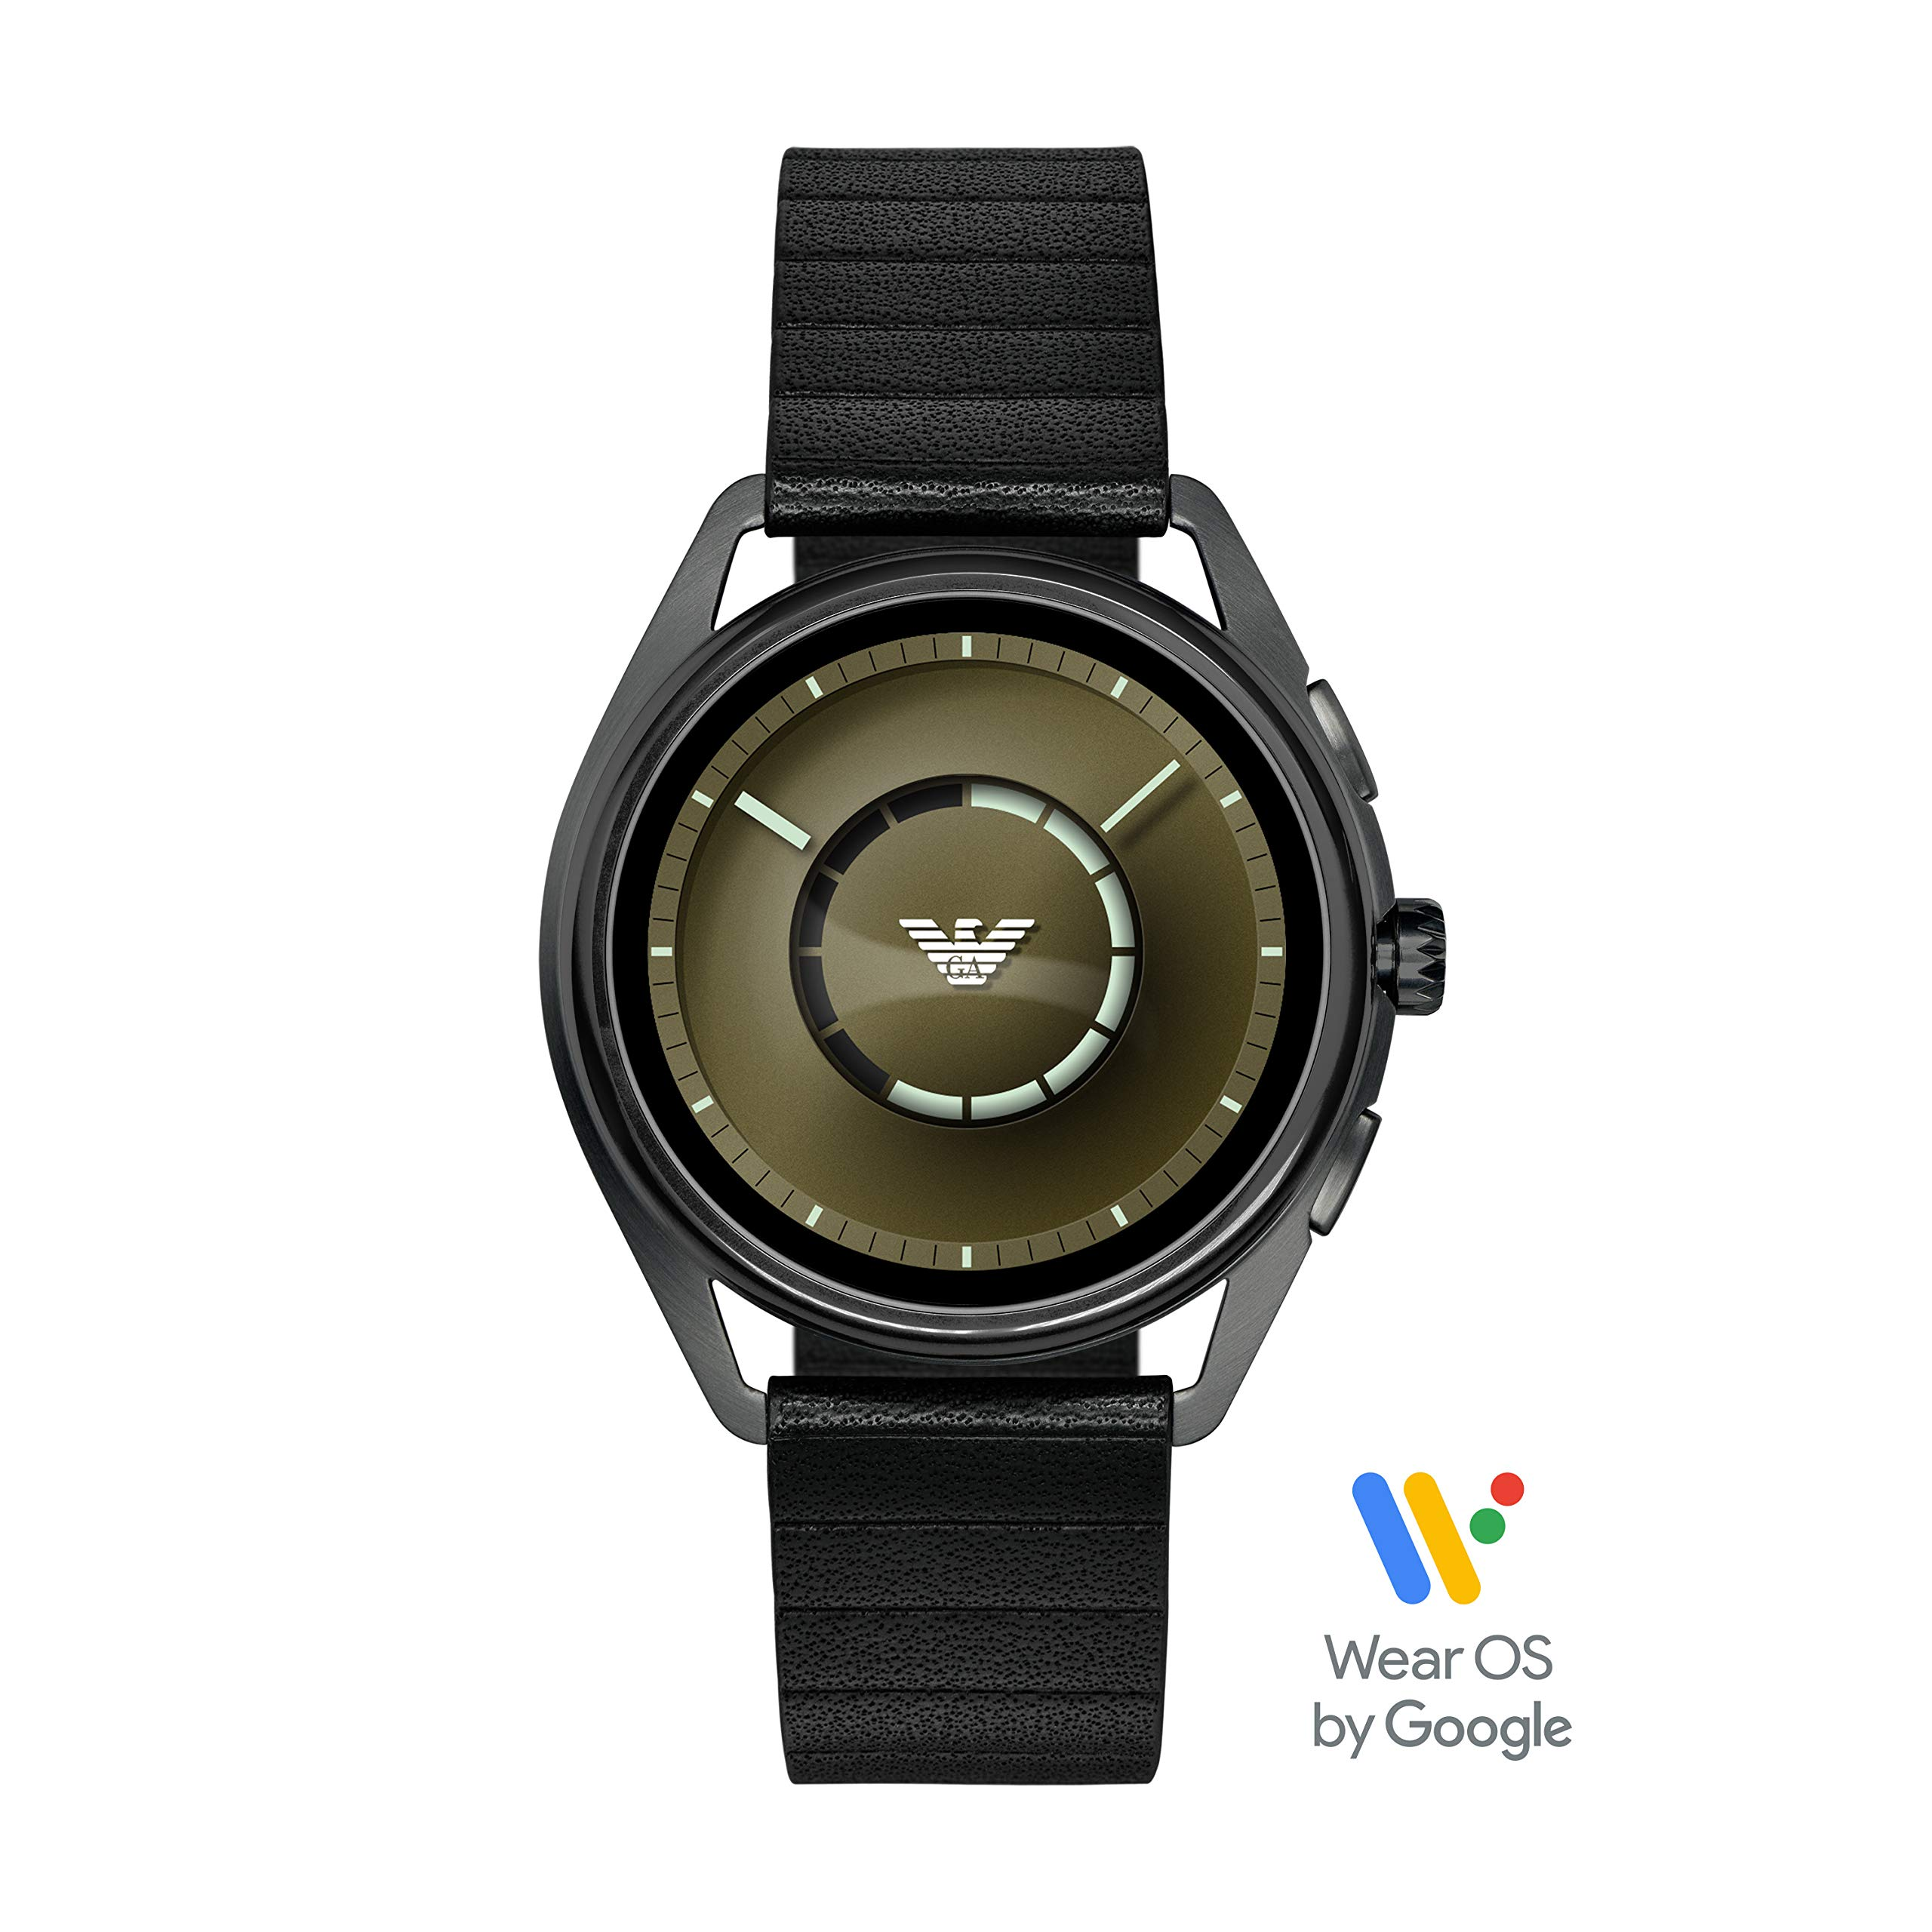 Emporio Armani Men's Stainless Steel Plated Touchscreen Smartwatch, Color: Gunmetal (Model: ART5009) by Emporio Armani